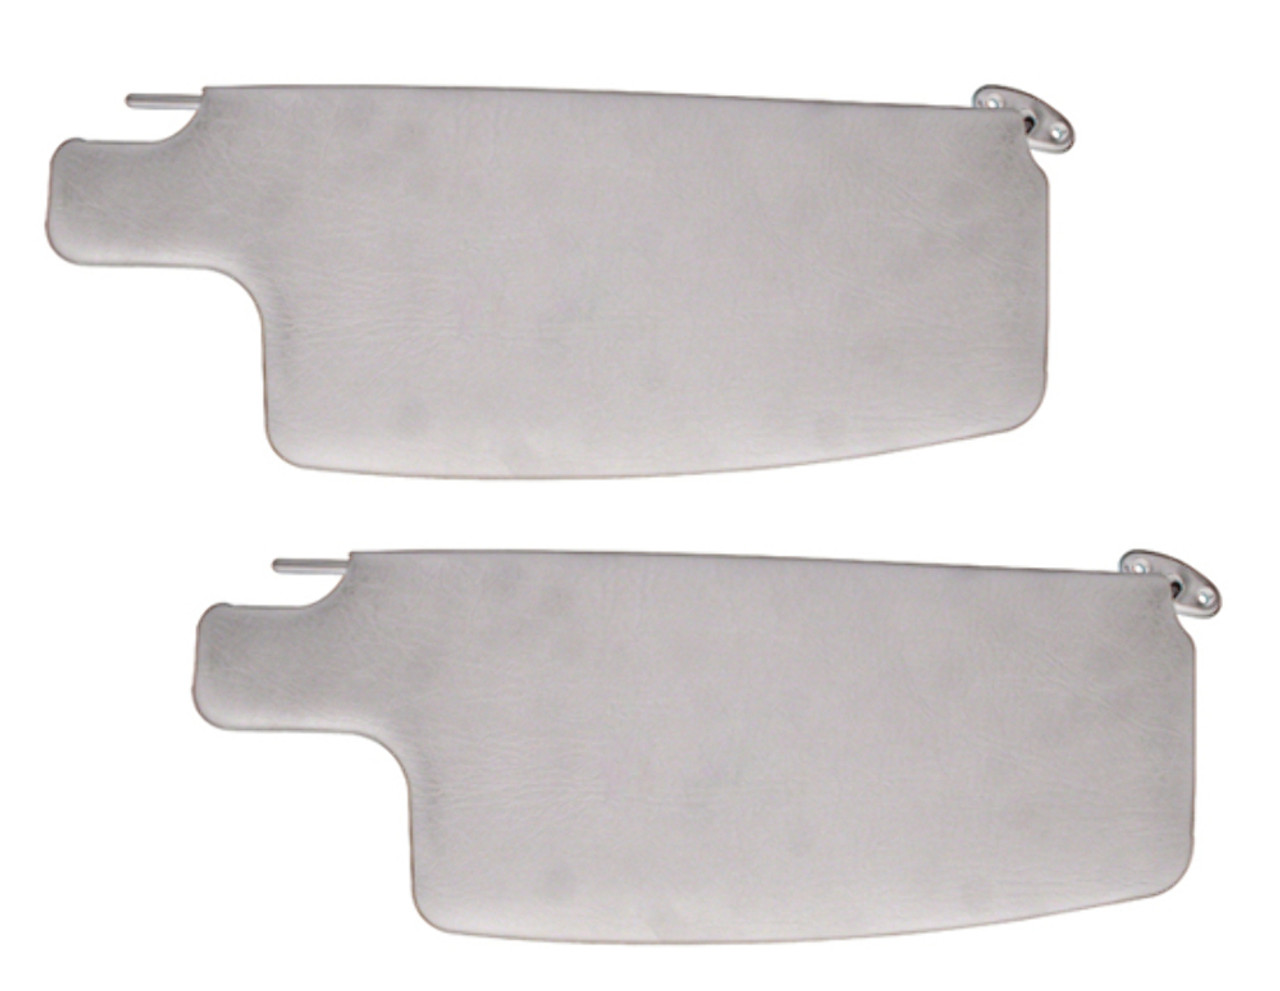 Sun Visors, Ivory, Compatible with VW Beetle 1965-77 & Convertible Bug 1973-79